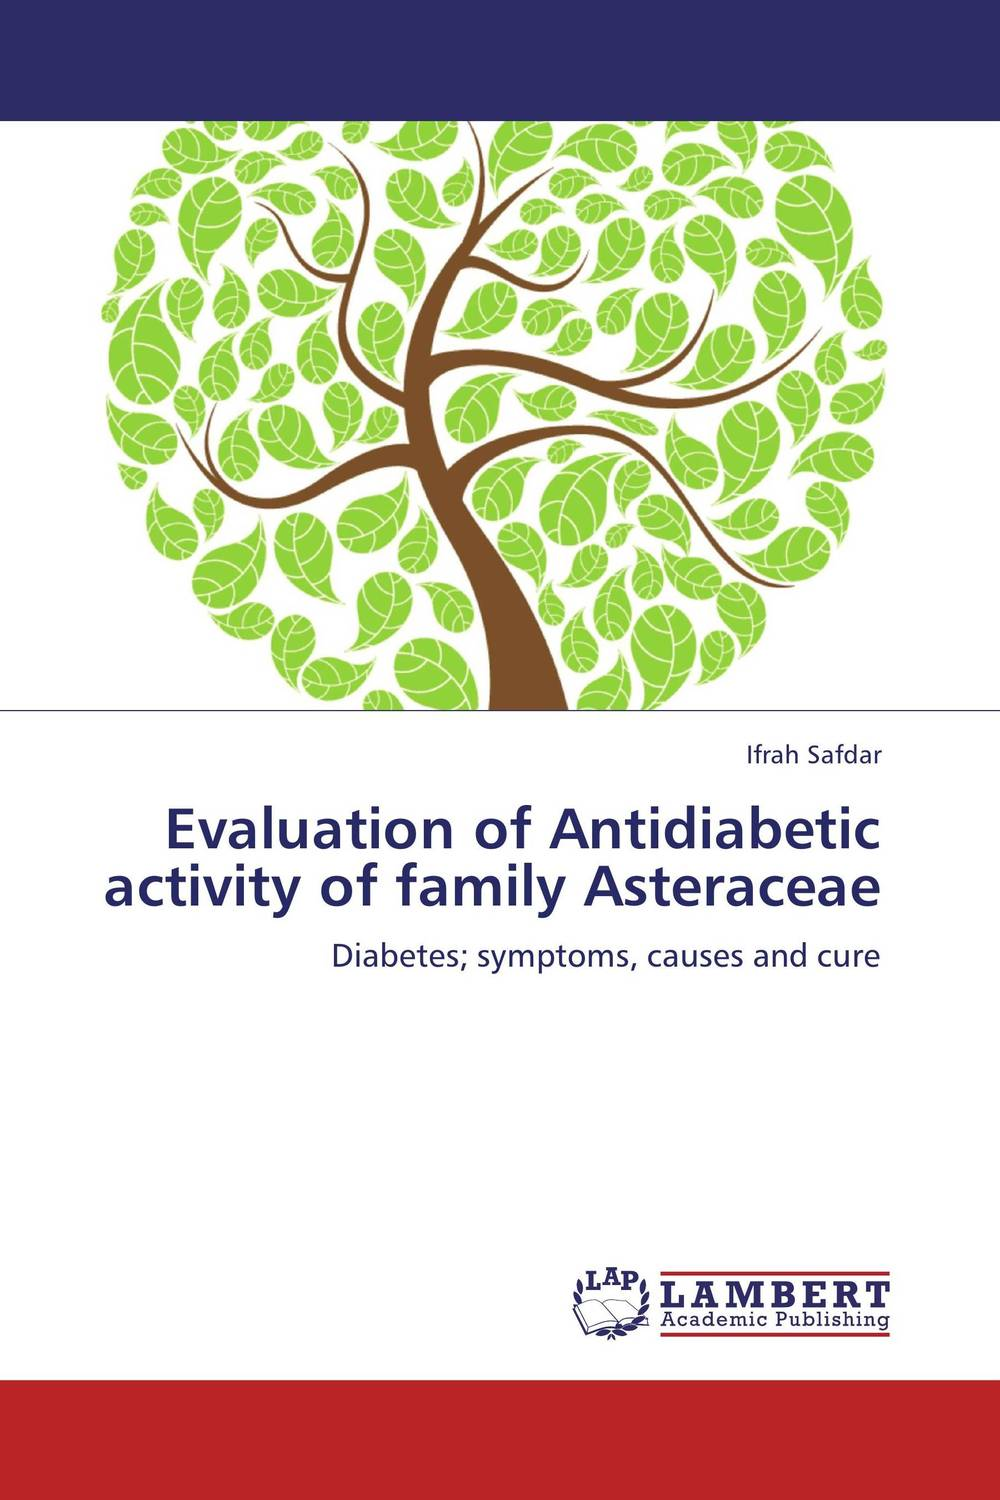 Evaluation of Antidiabetic activity of family Asteraceae